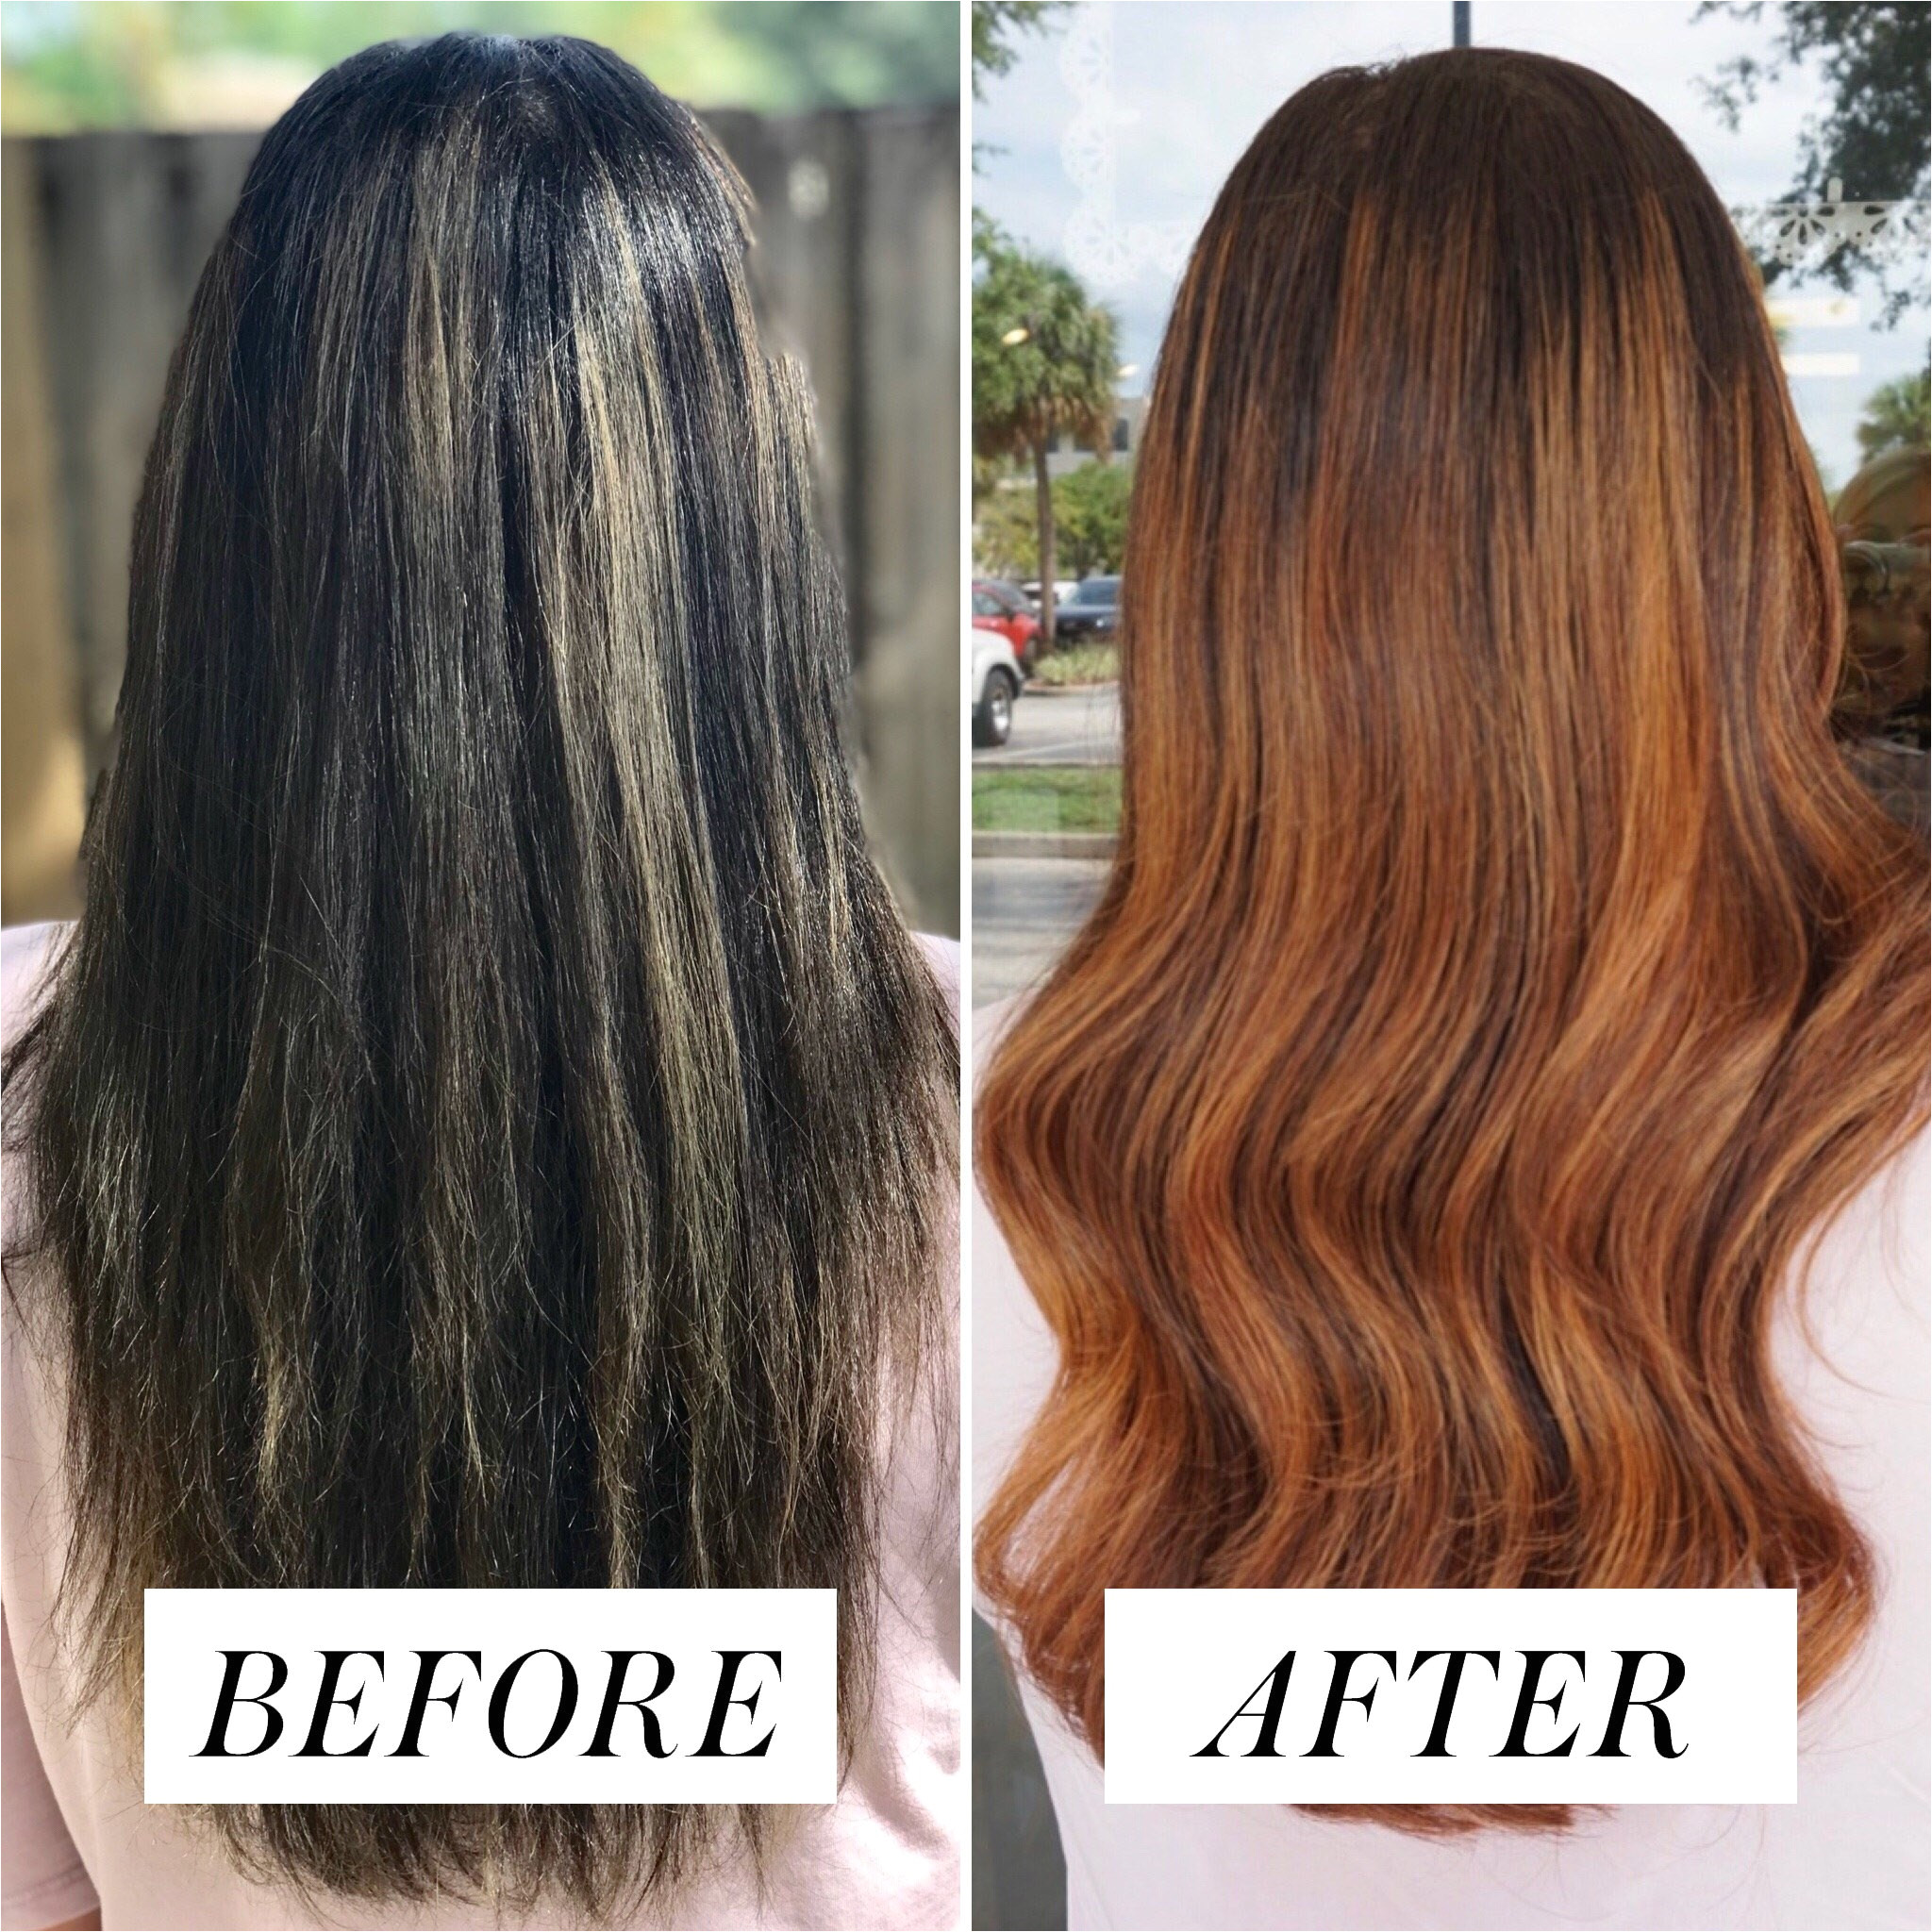 Re Bath before after Pictures How My Hair Colorist Corrected the Worst Dye Job I Ve Ever Had Allure